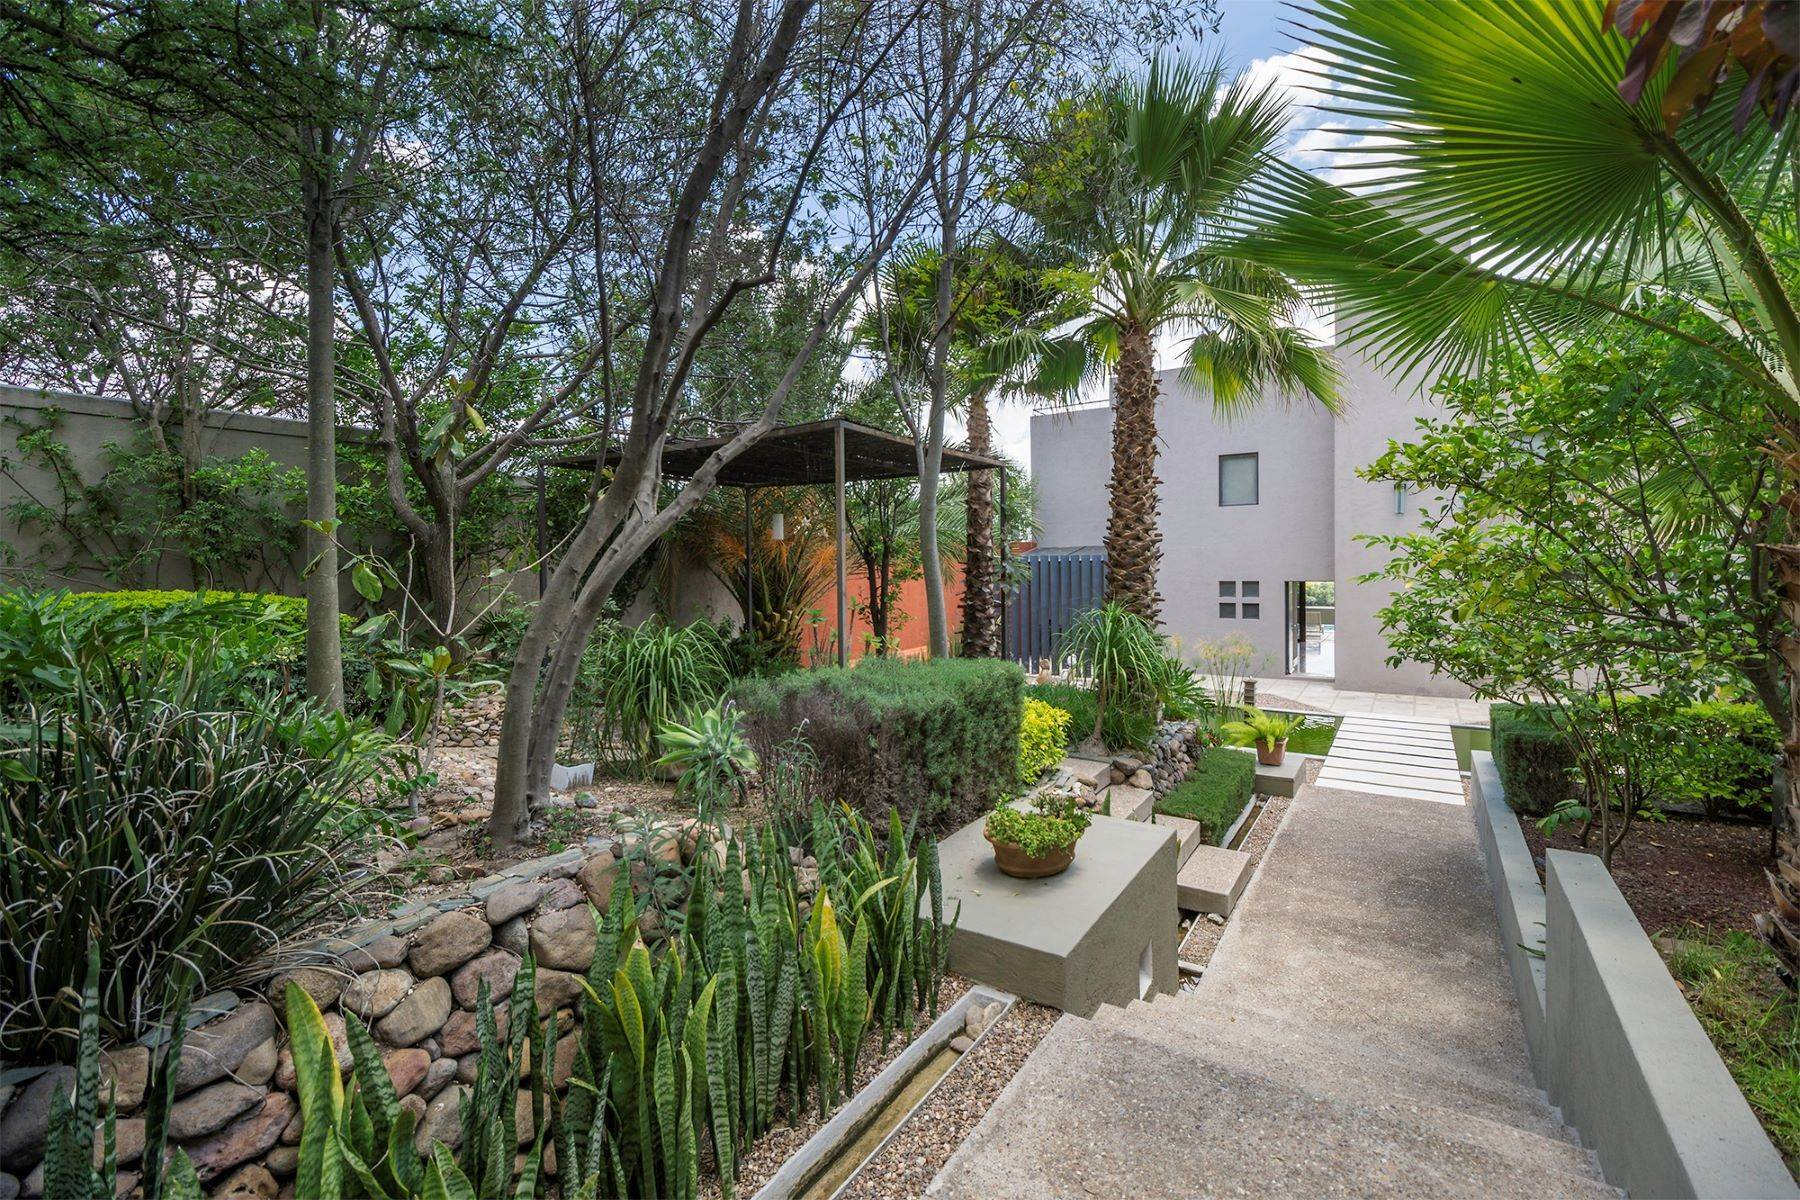 8. Single Family Homes for Sale at Casa Cieneguita Eco-Friendly Calle Hidalgo #56 San Miguel De Allende, Guanajuato 37893 Mexico